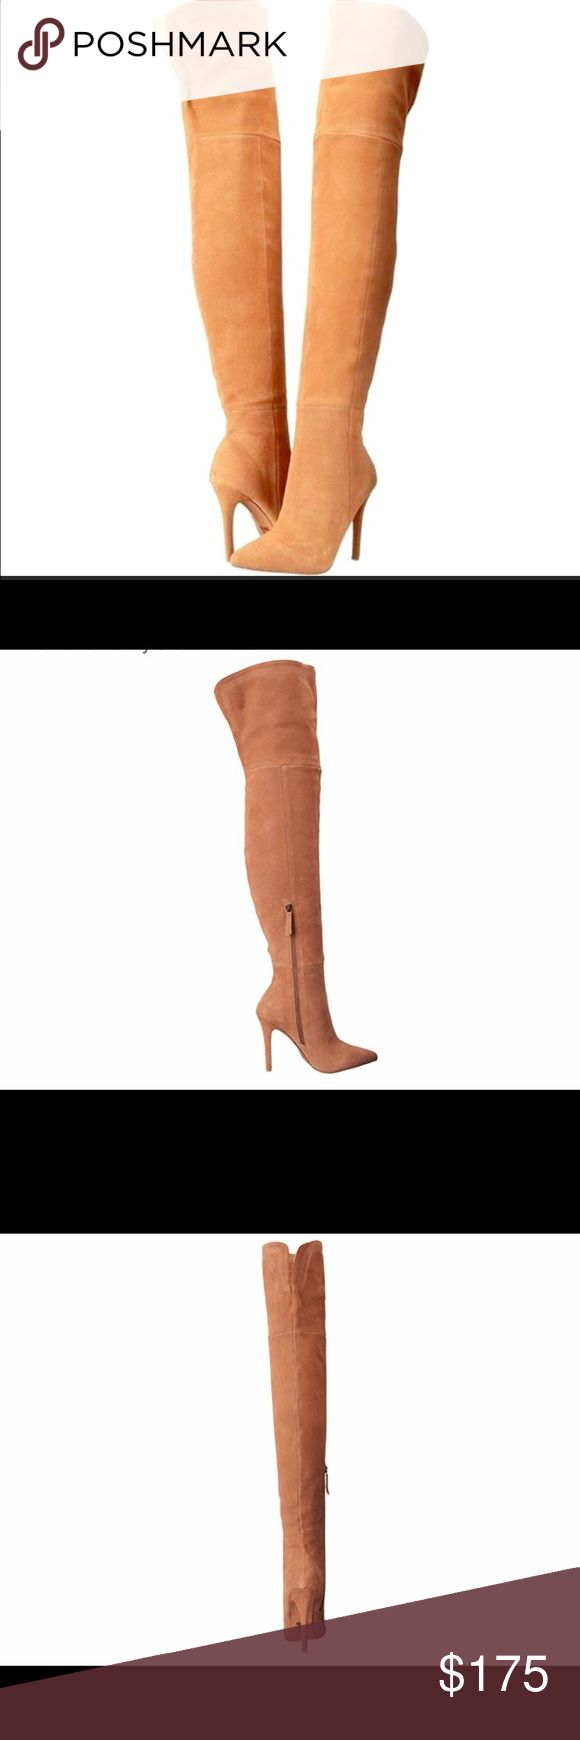 Joes Jeans Huntley Suede Boots New in box, authentic Joes Huntly Over the Knee Boots. These are thigh high, premium quality thick suede. Extremely Rare, sold out everywhere, never got around to wearing them. These are a find, retail for $275. Joe's Jeans Shoes Over the Knee Boots